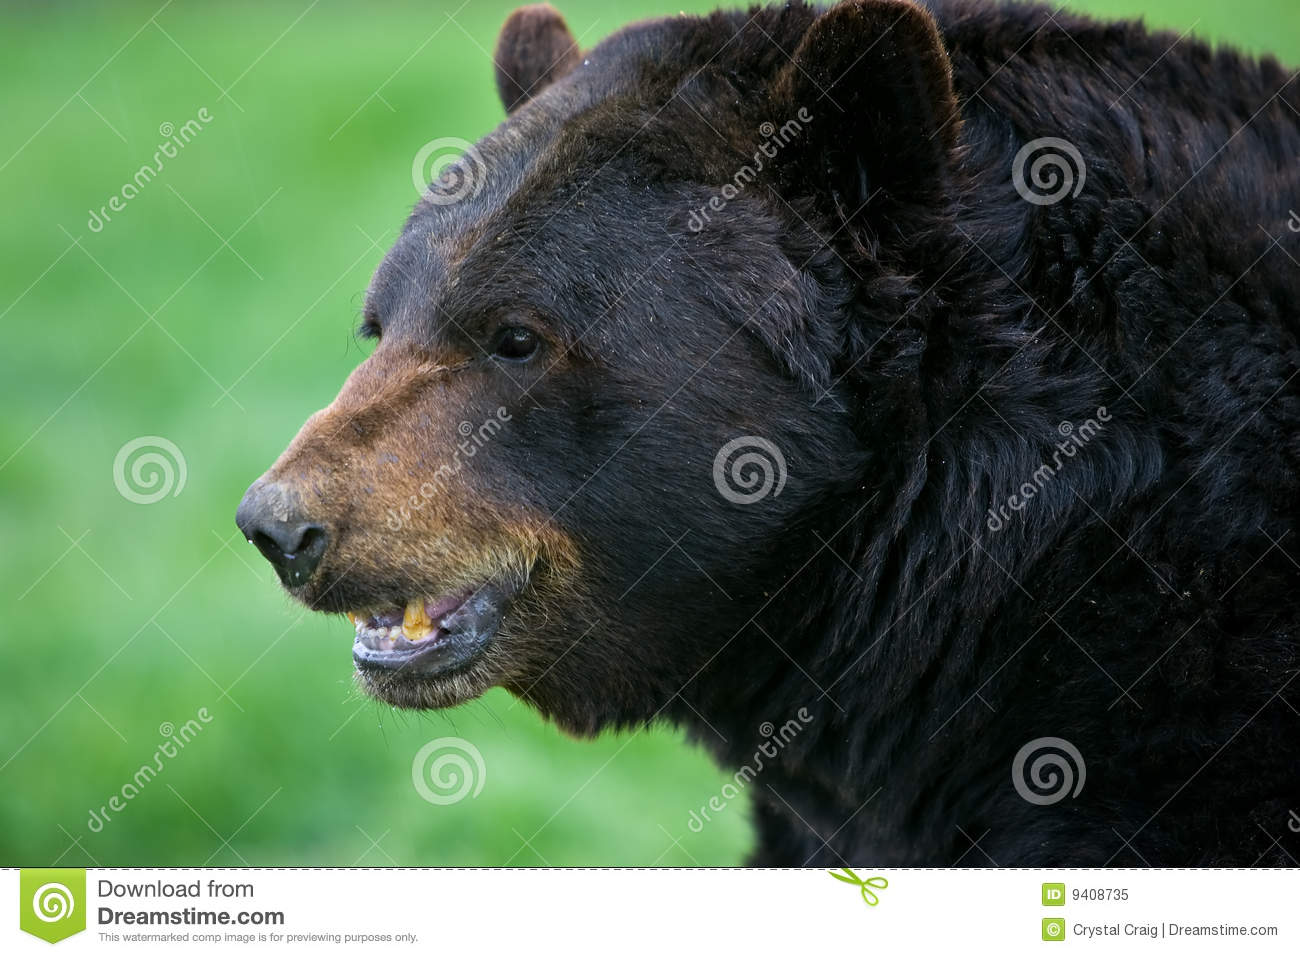 Black bear head profile - photo#3